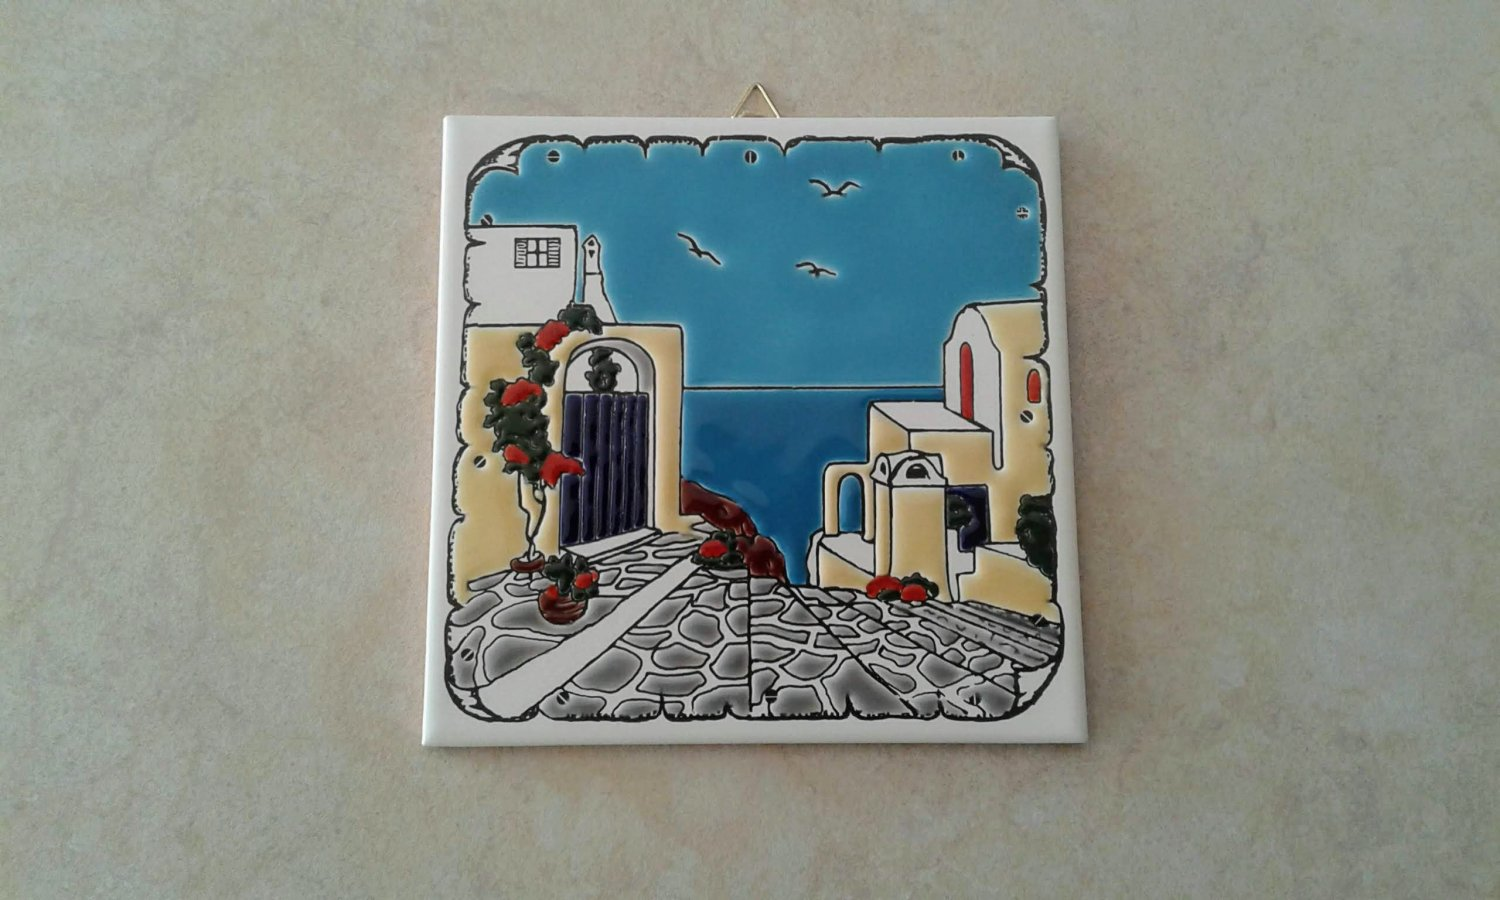 Ceramic Art Tile, Greek Handmade, Hand Painted in Relief Wall Decor, Landscape, stoneware, pottery